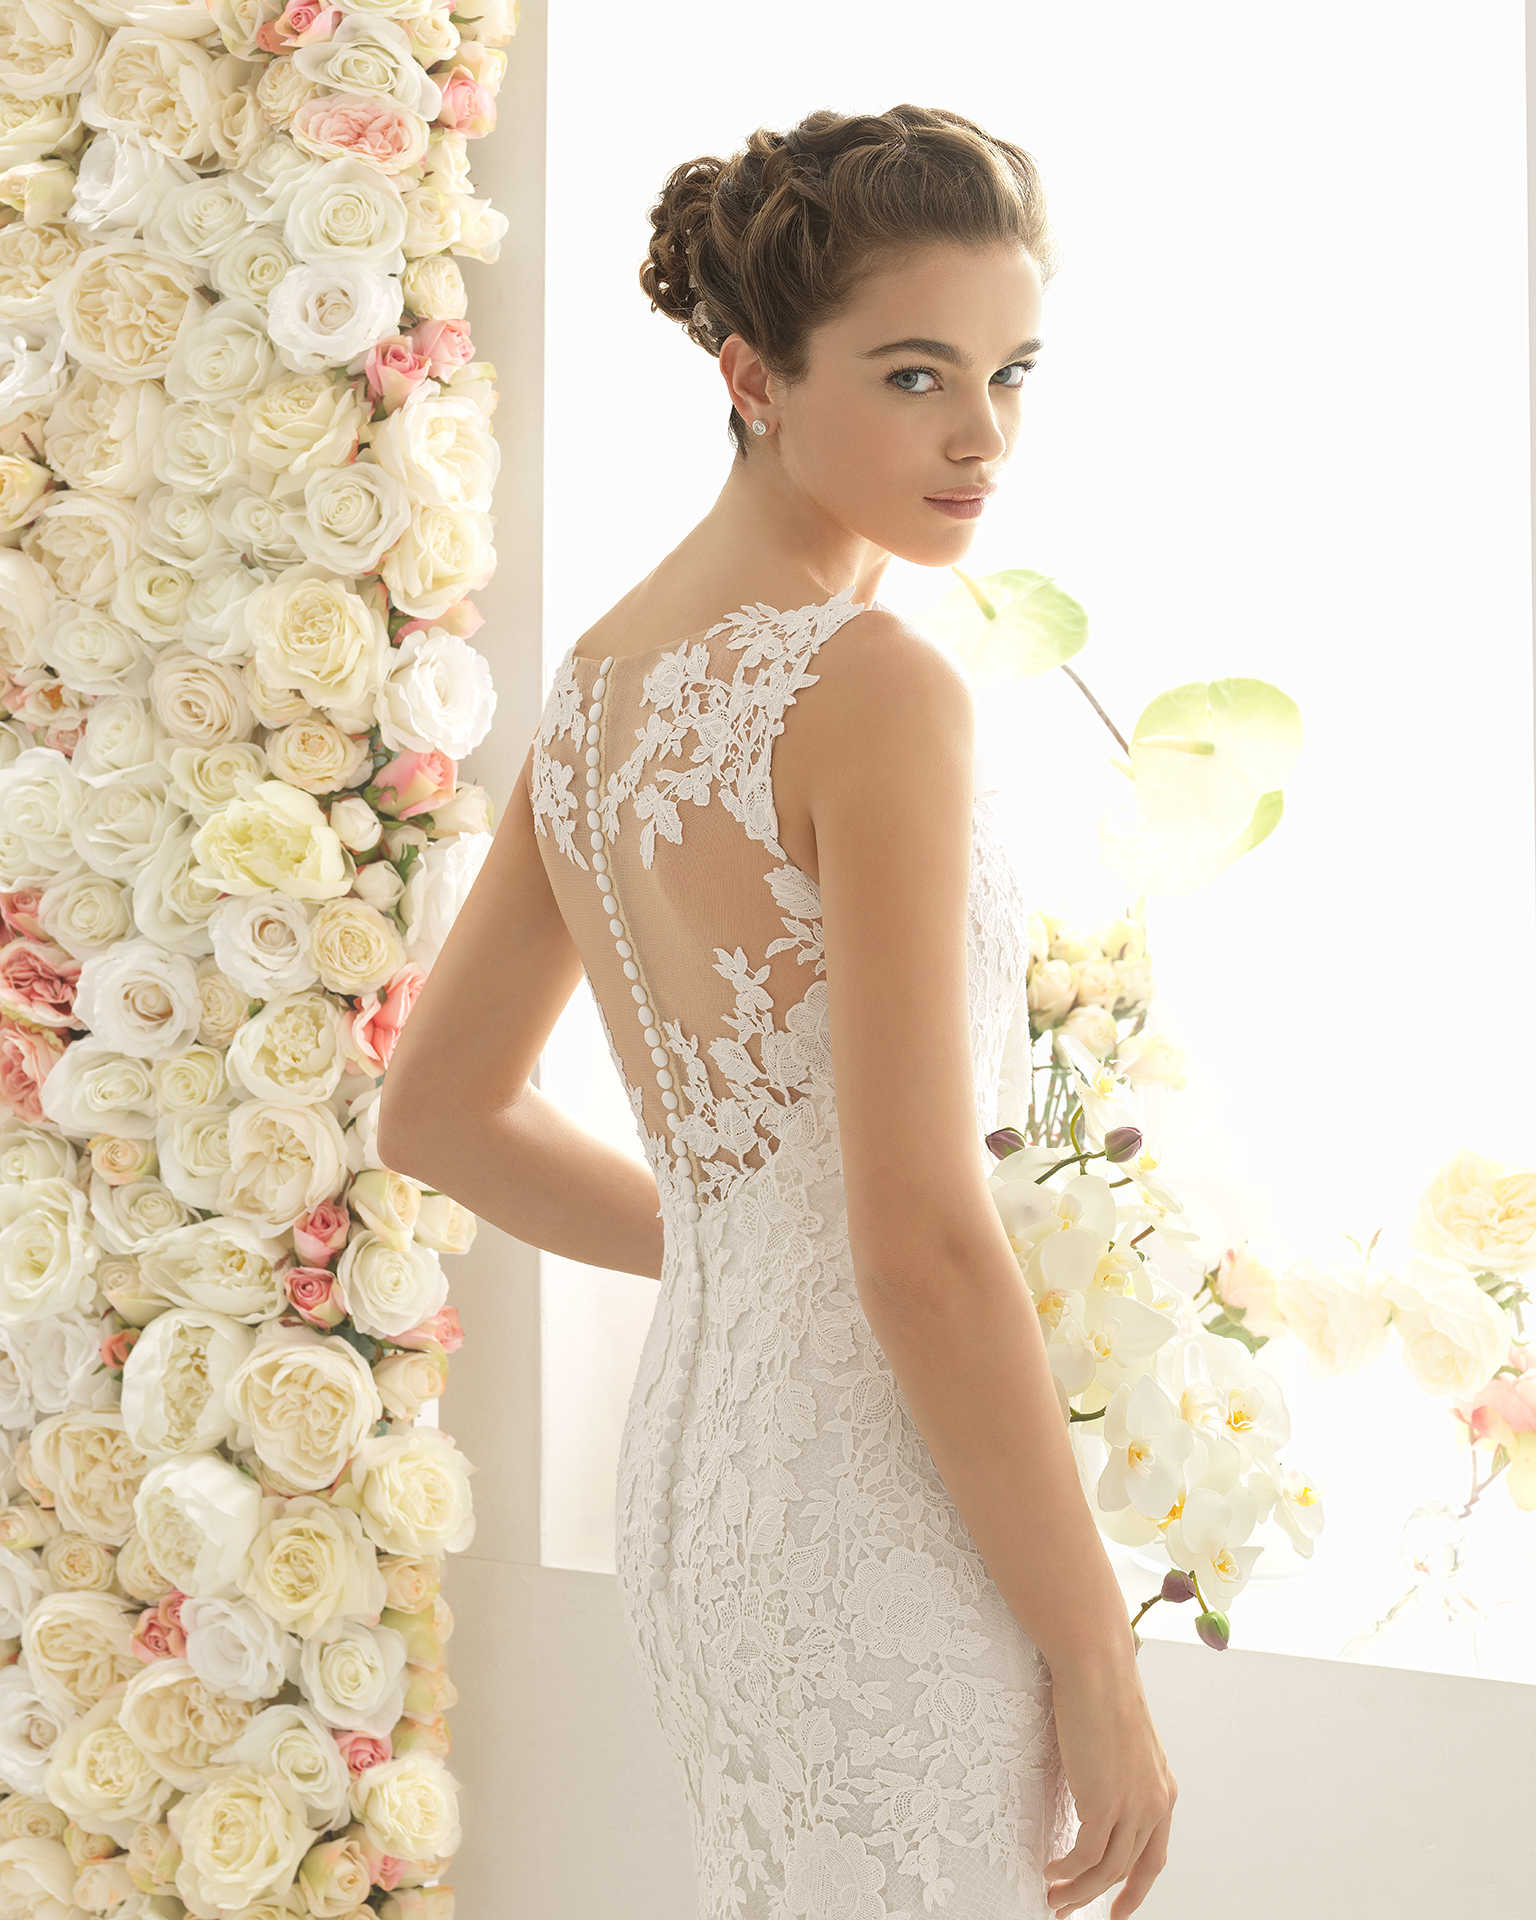 The Bridal Box Bridal Boutique - Bridalwear Shops in Oxfordshire